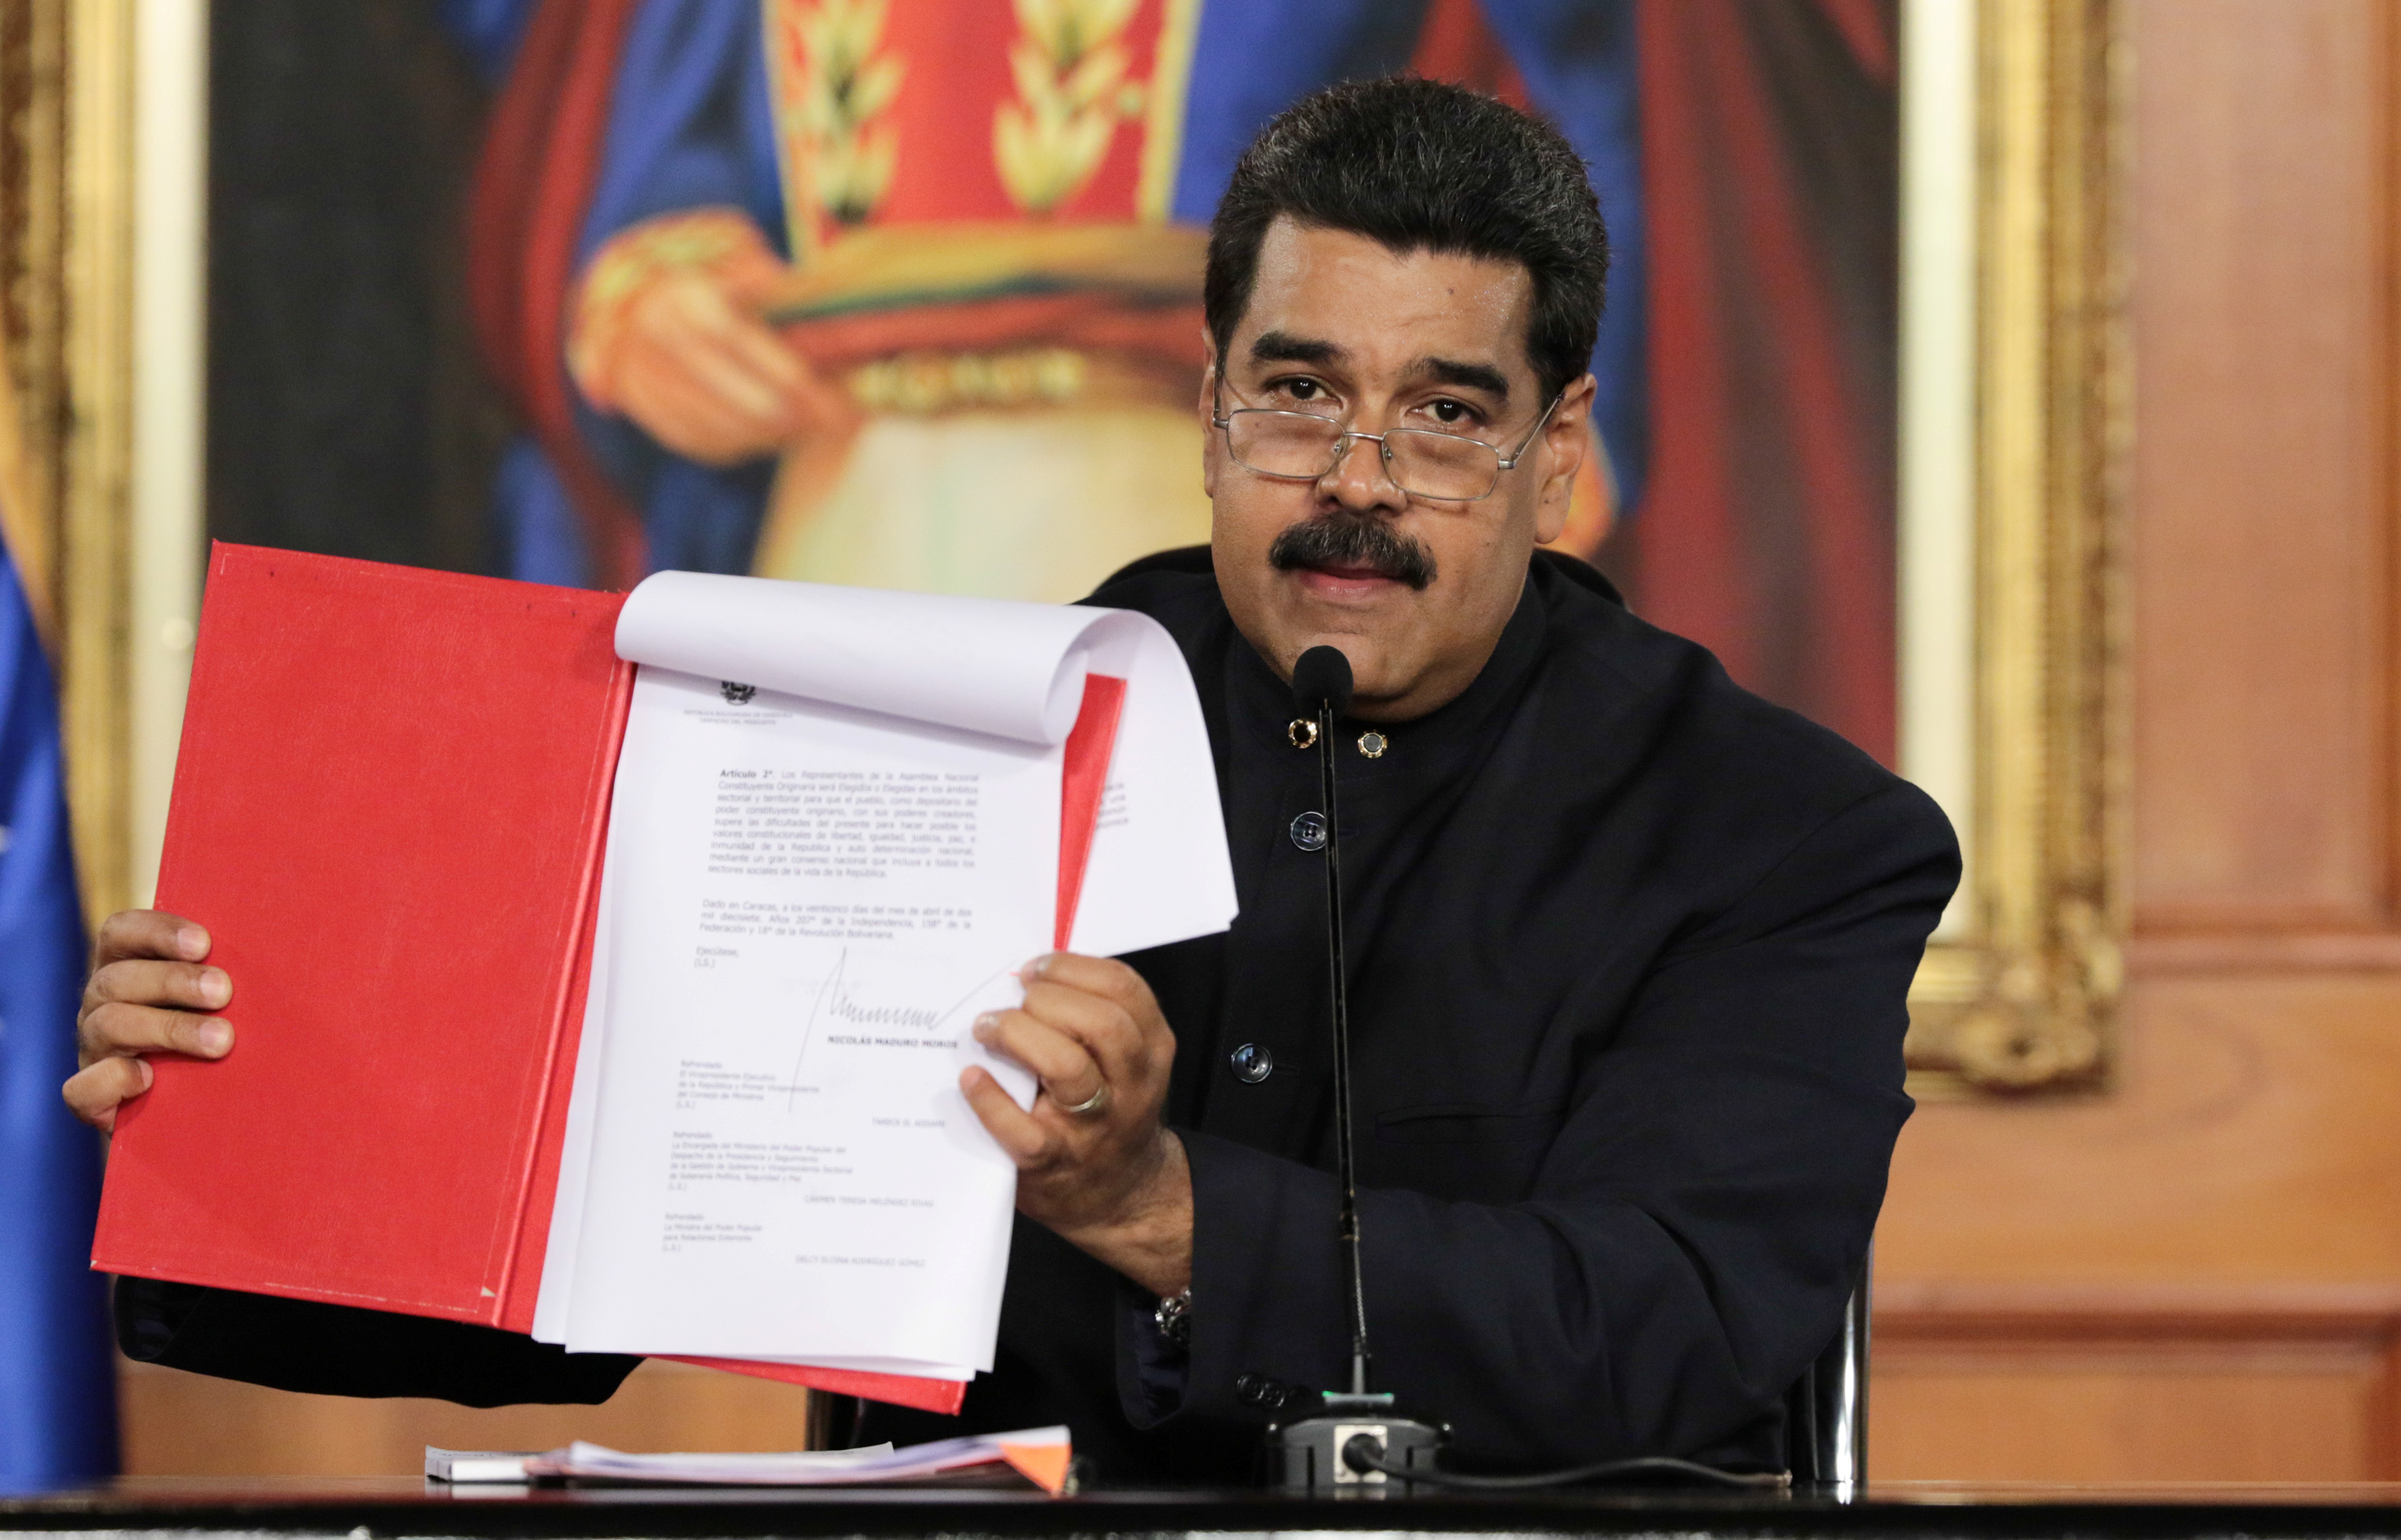 Venezuela's President Nicolas Maduro holds a document as he speaks during a ceremony at Miraflores Palace in Caracas, May 1, 2017.